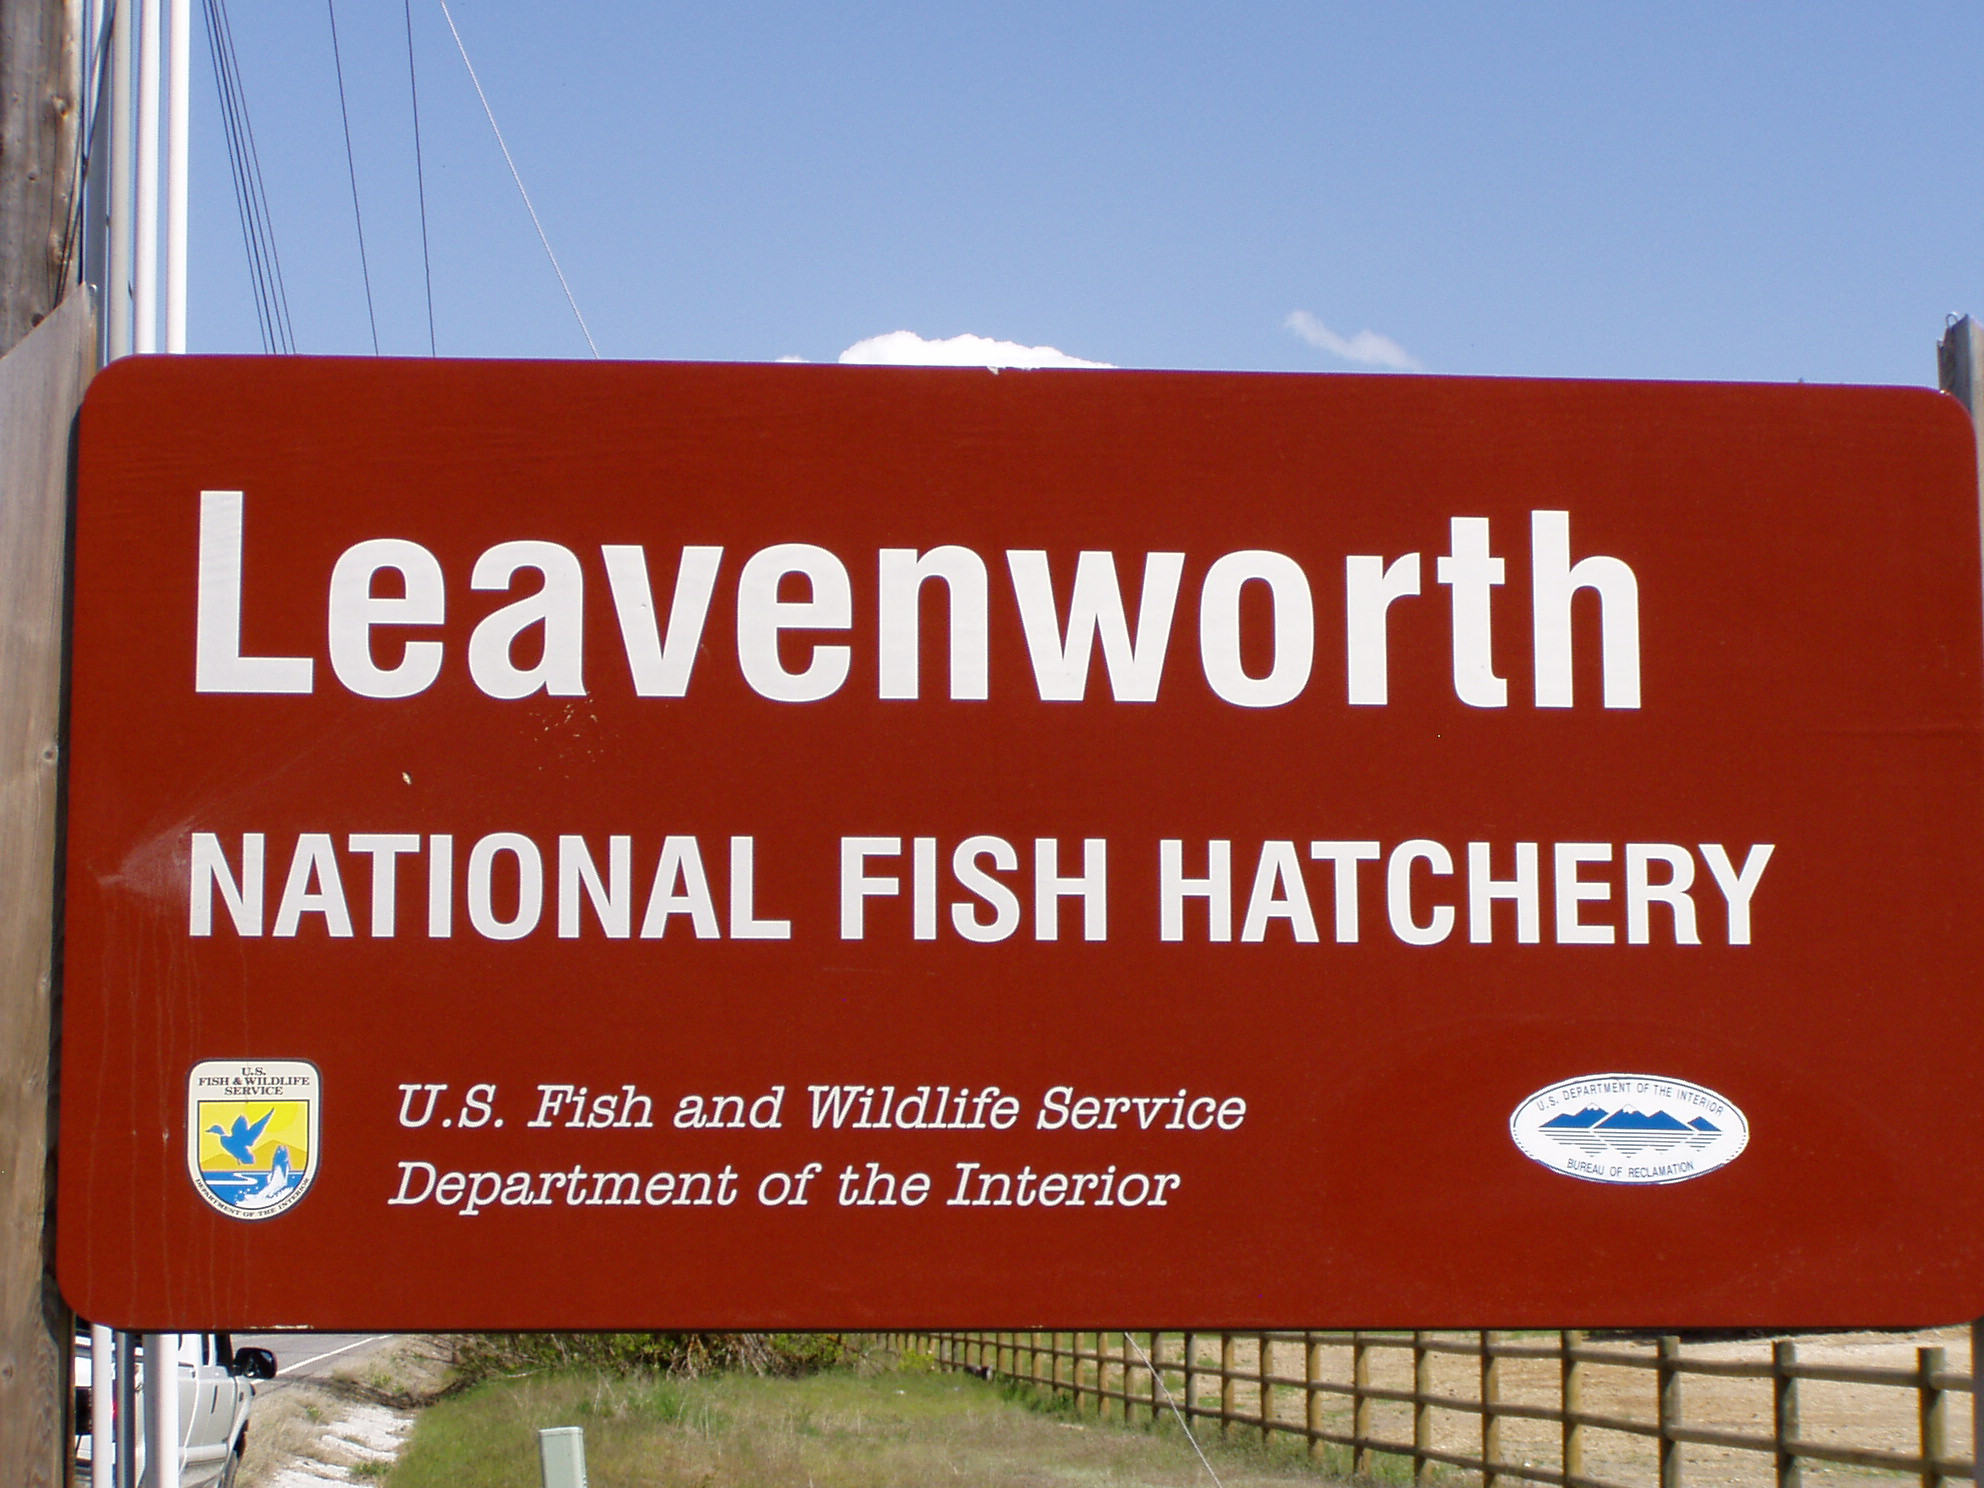 Leavenworth National Fish Hatchery - photo by John Osborn